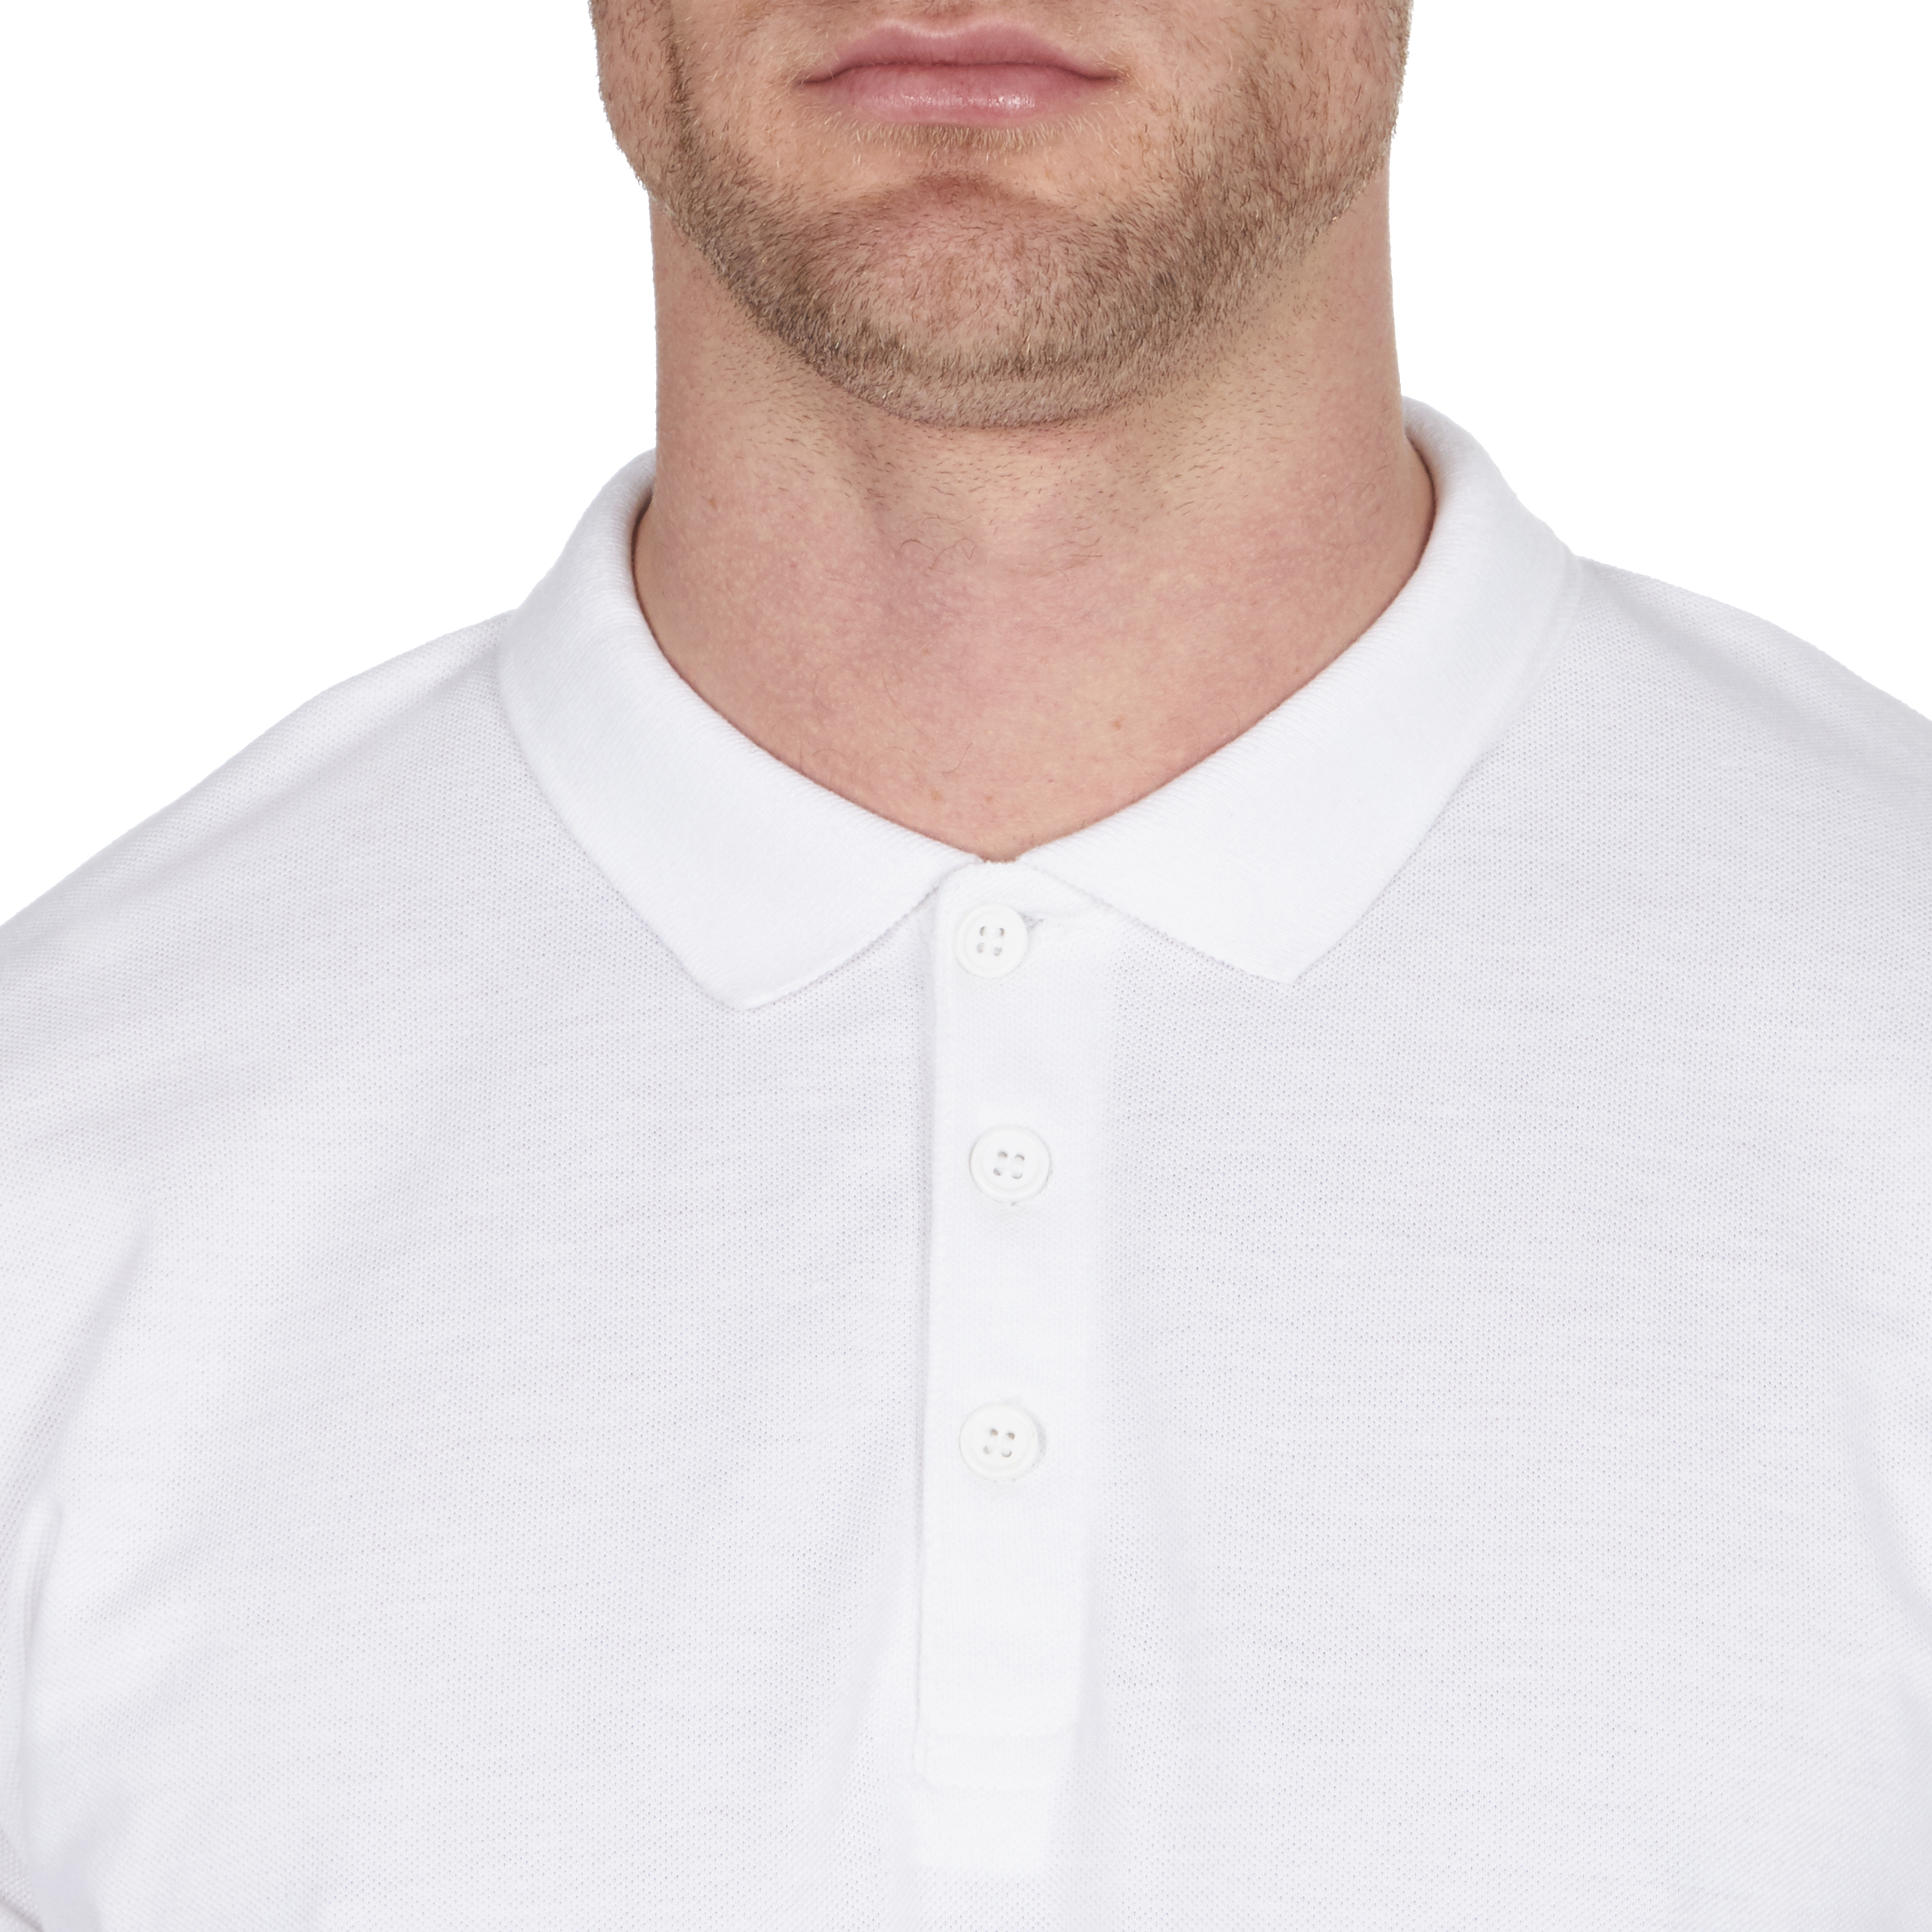 Mens-Classic-Polo-Top-Plus-Size-T-Shirt-Plain-Shirt-Big-And-Tall-Short-Sleeve thumbnail 36